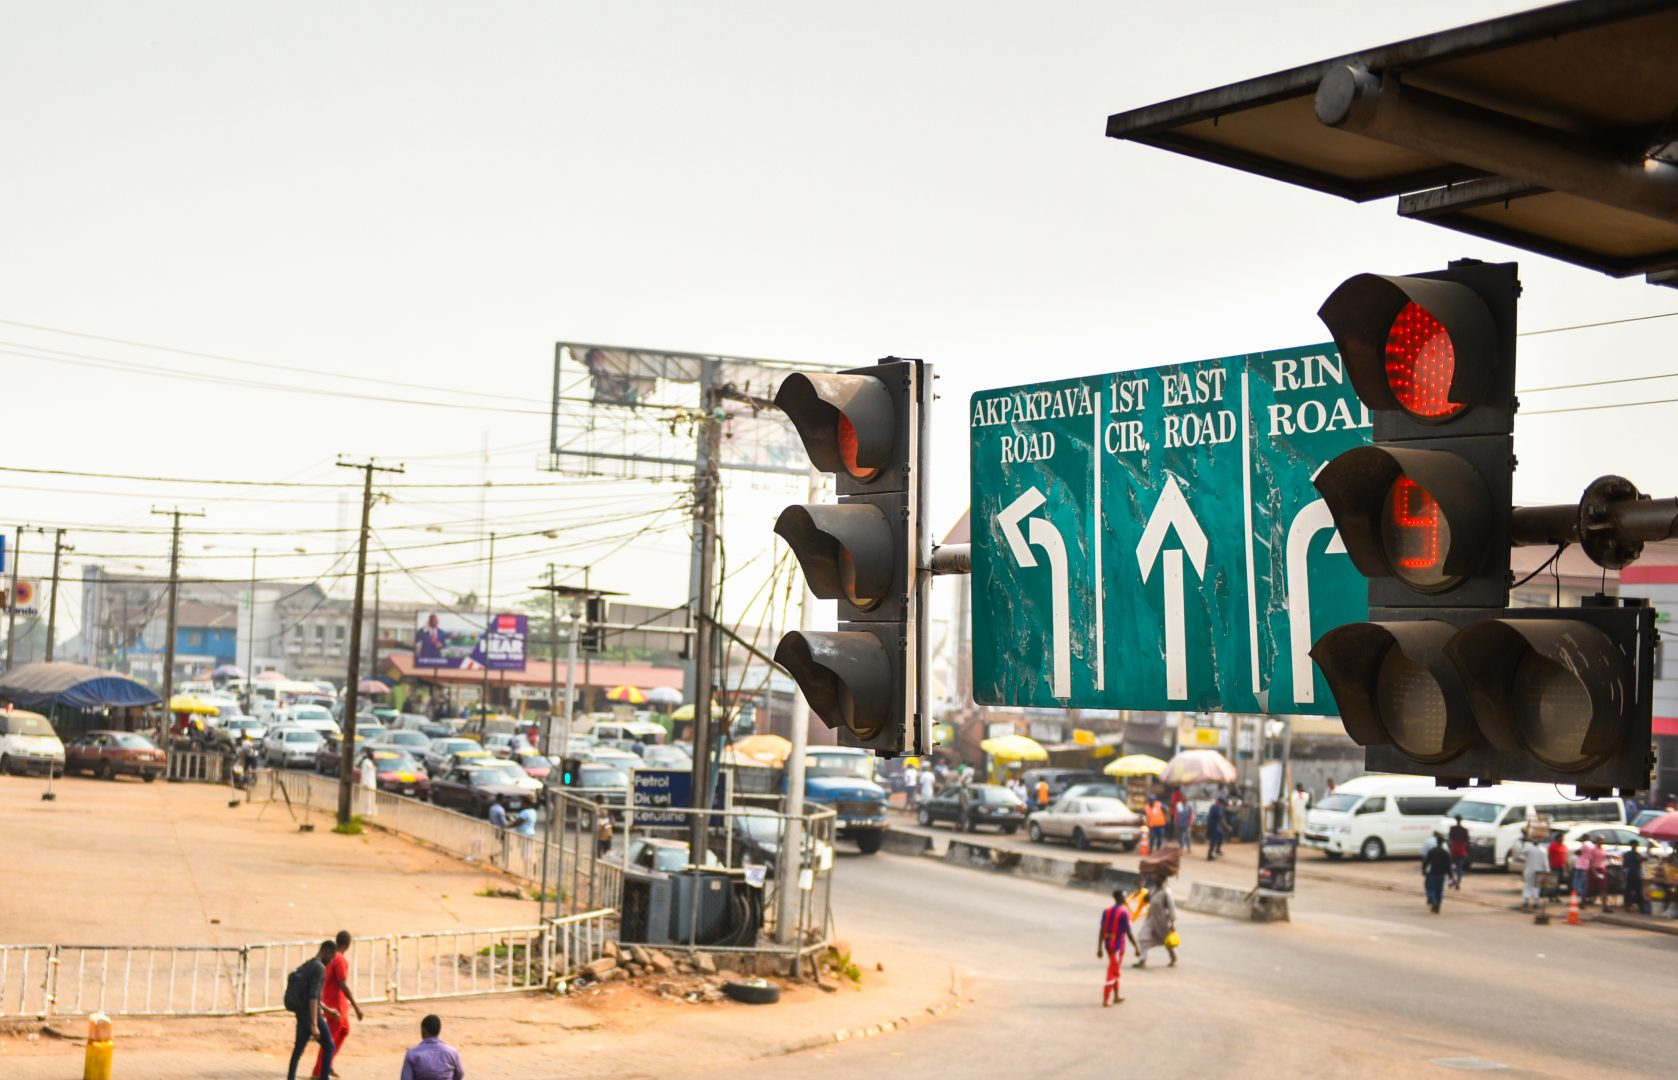 A traffic light counts down to green within the city of Benin